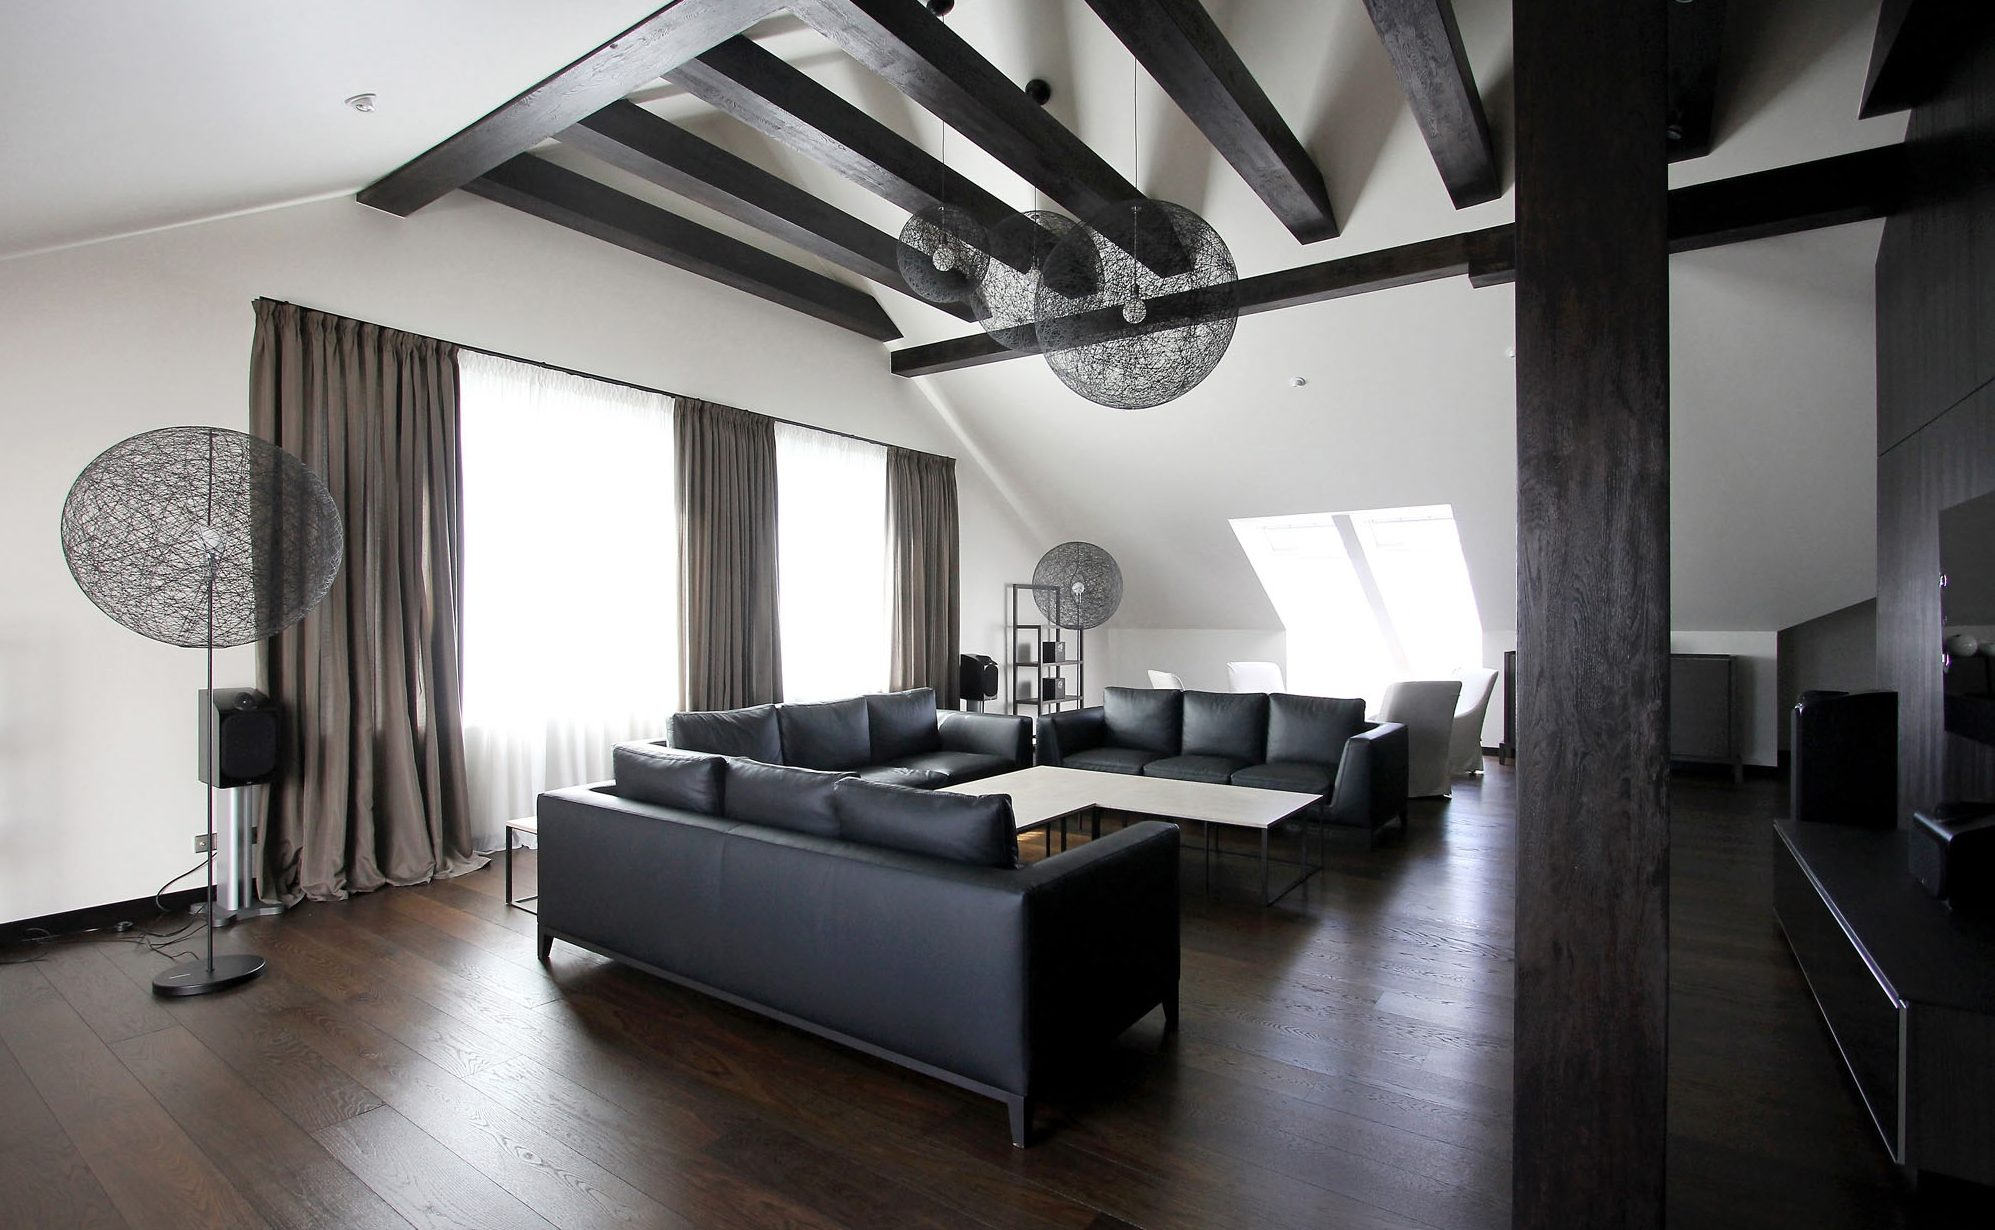 Black beams on the ceiling in the living room interior